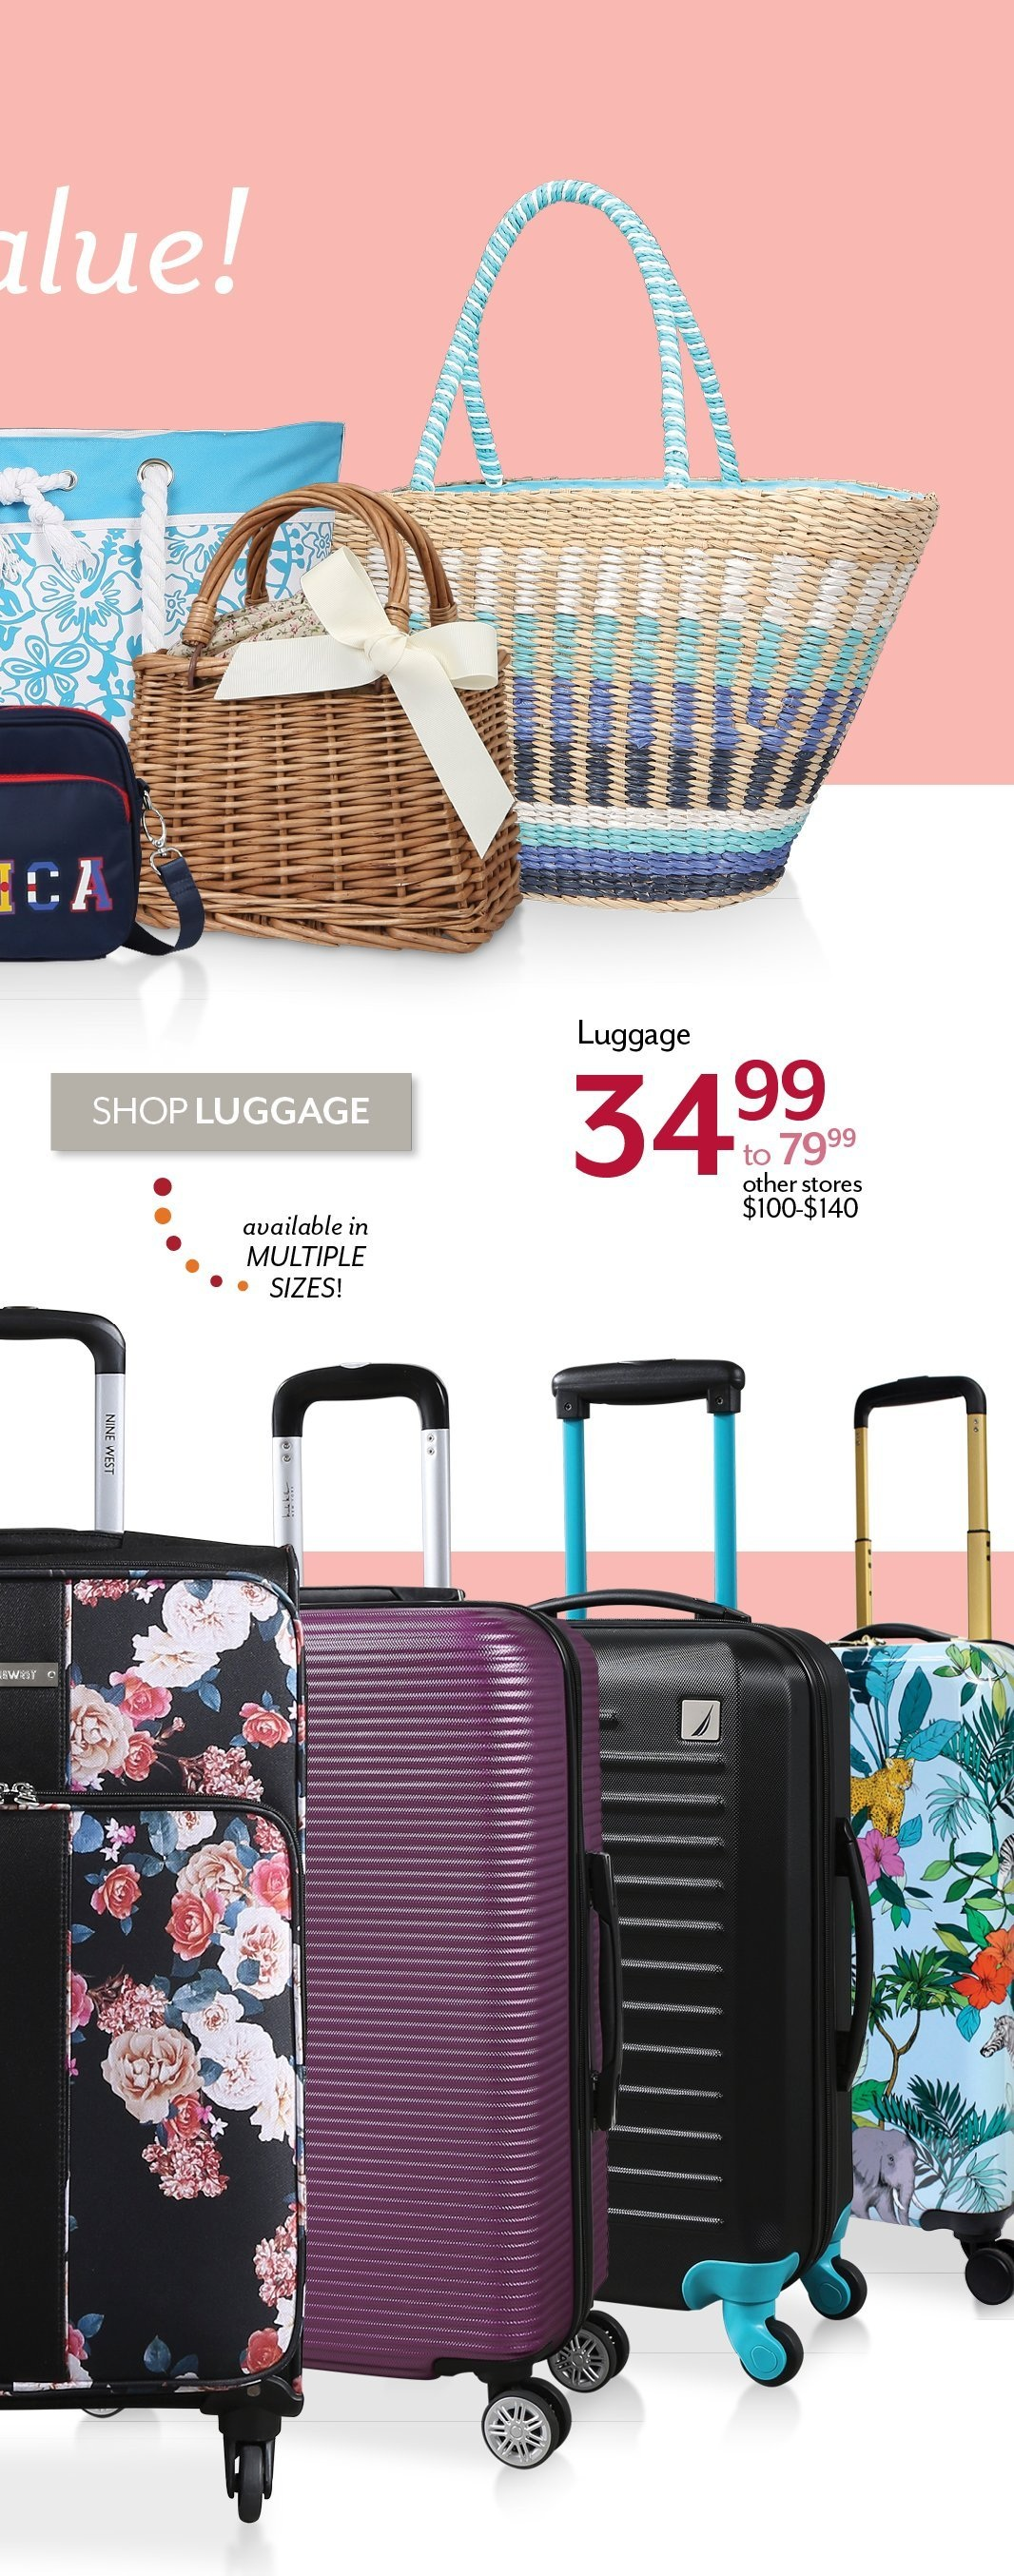 Shop Luggages